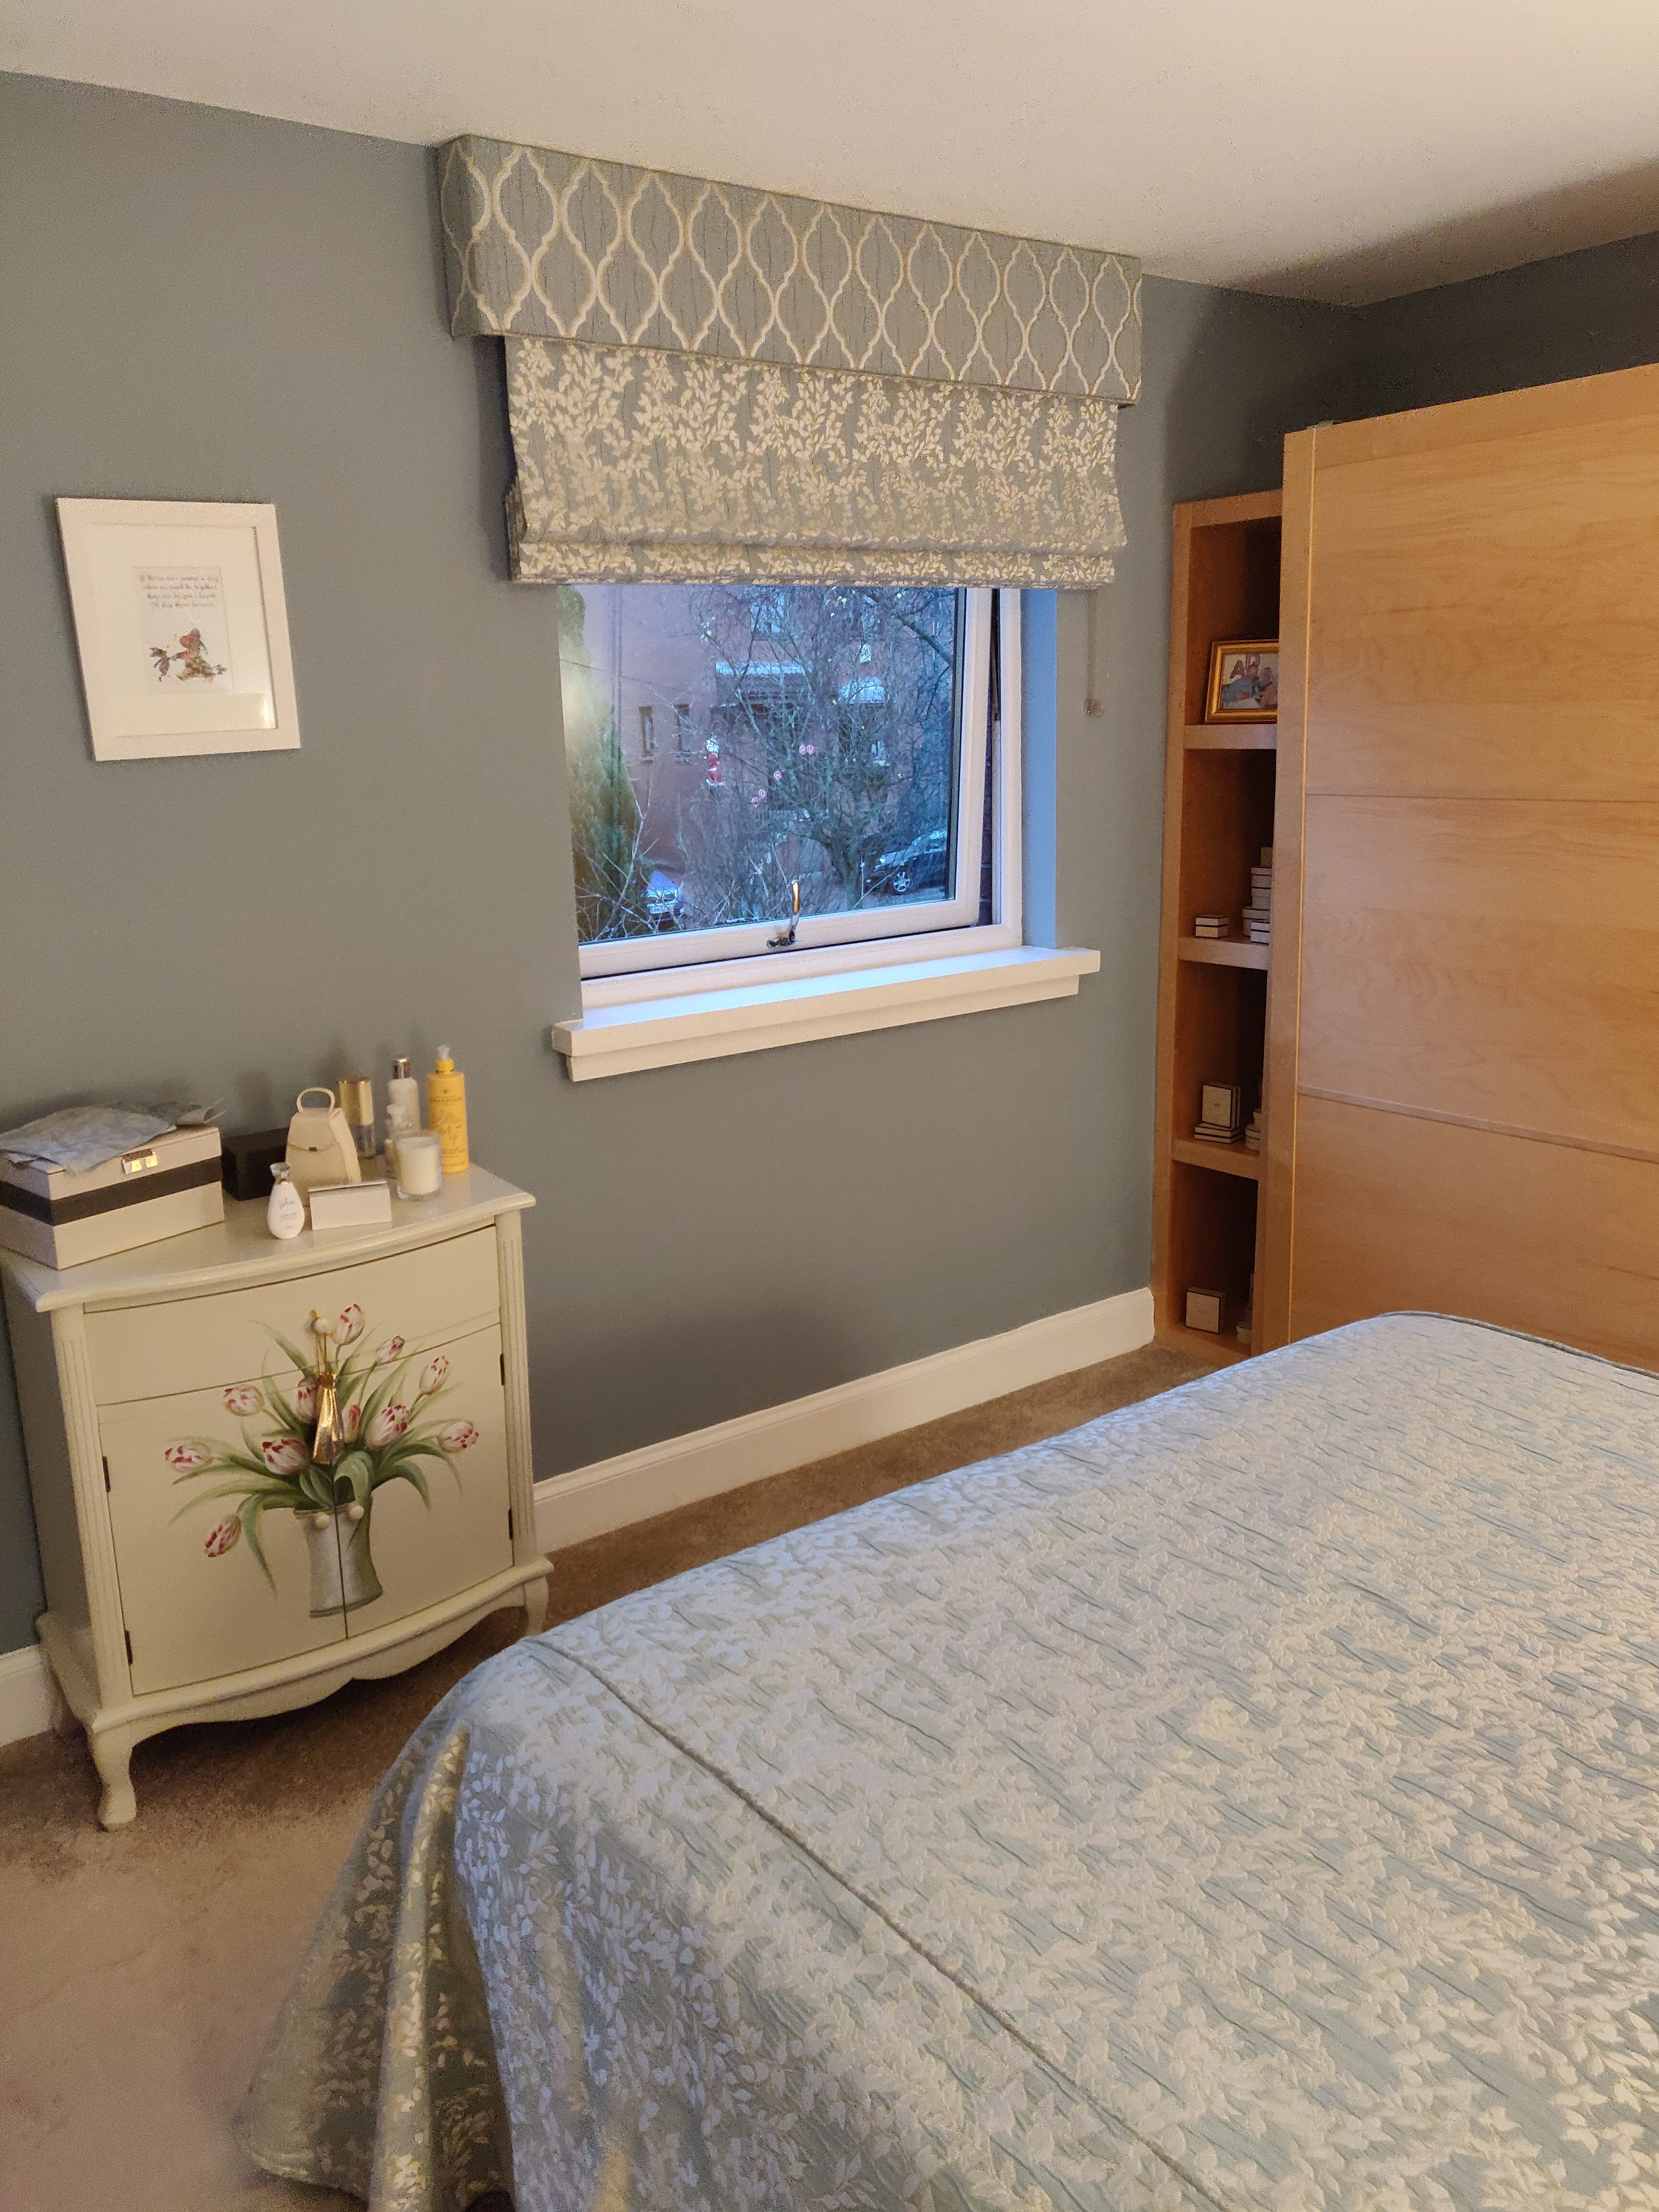 Roman Blinds And Pelmets For A Master Bedroom Complete With Bedspread And Cushions Ines Interiors Because It S Your Home